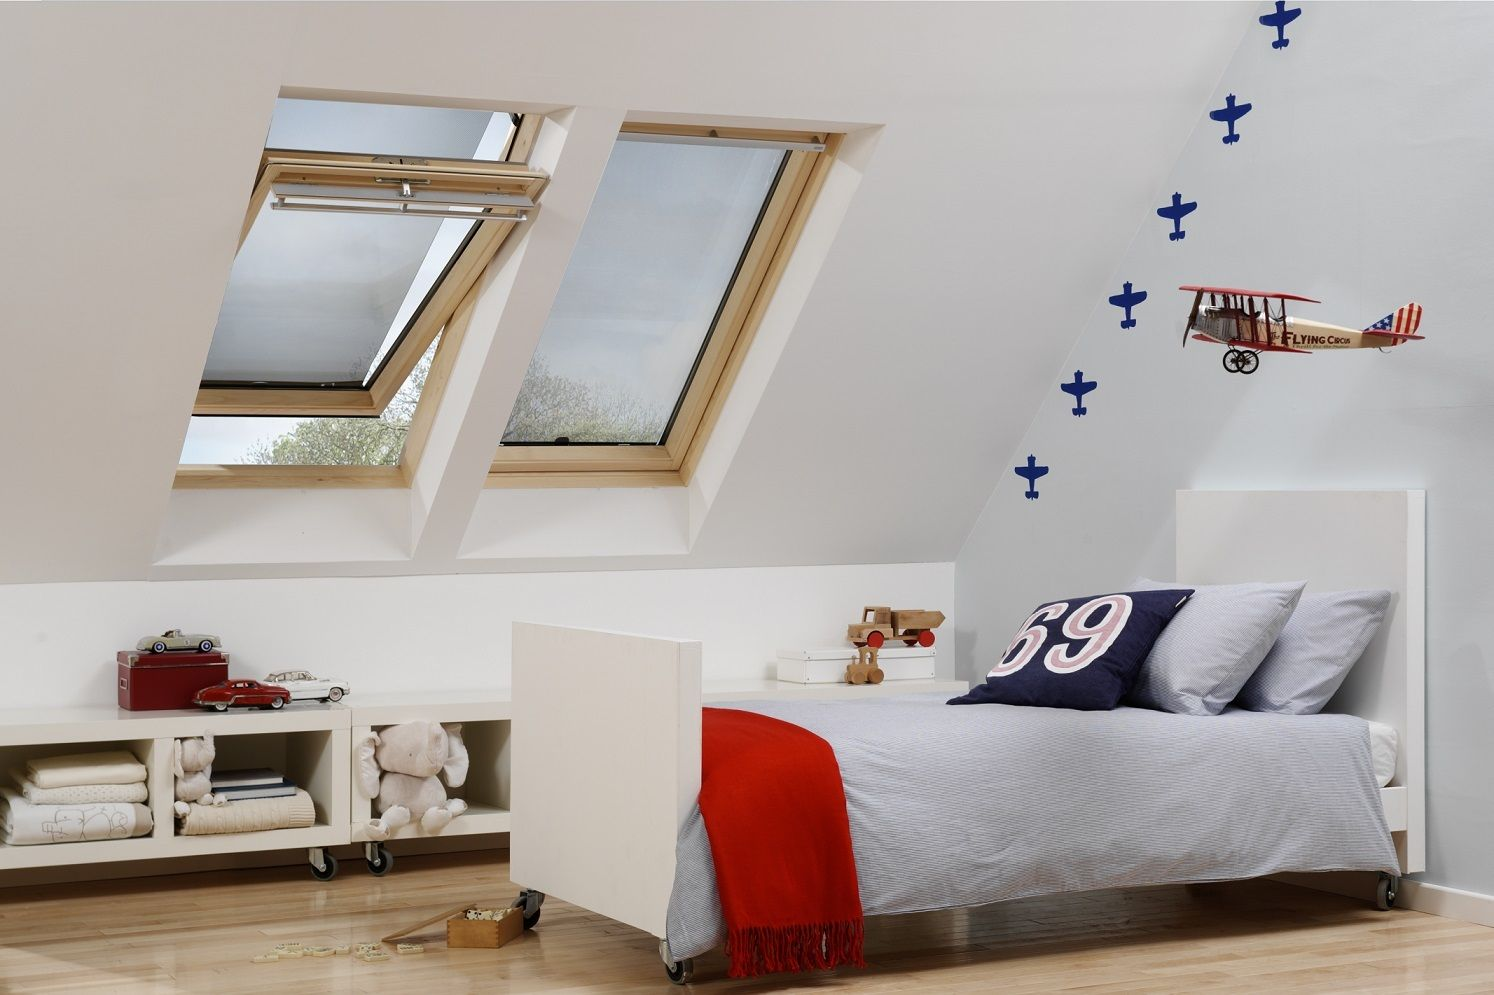 hitzeschutz markisen f r velux dachfenster sonnenschutz. Black Bedroom Furniture Sets. Home Design Ideas